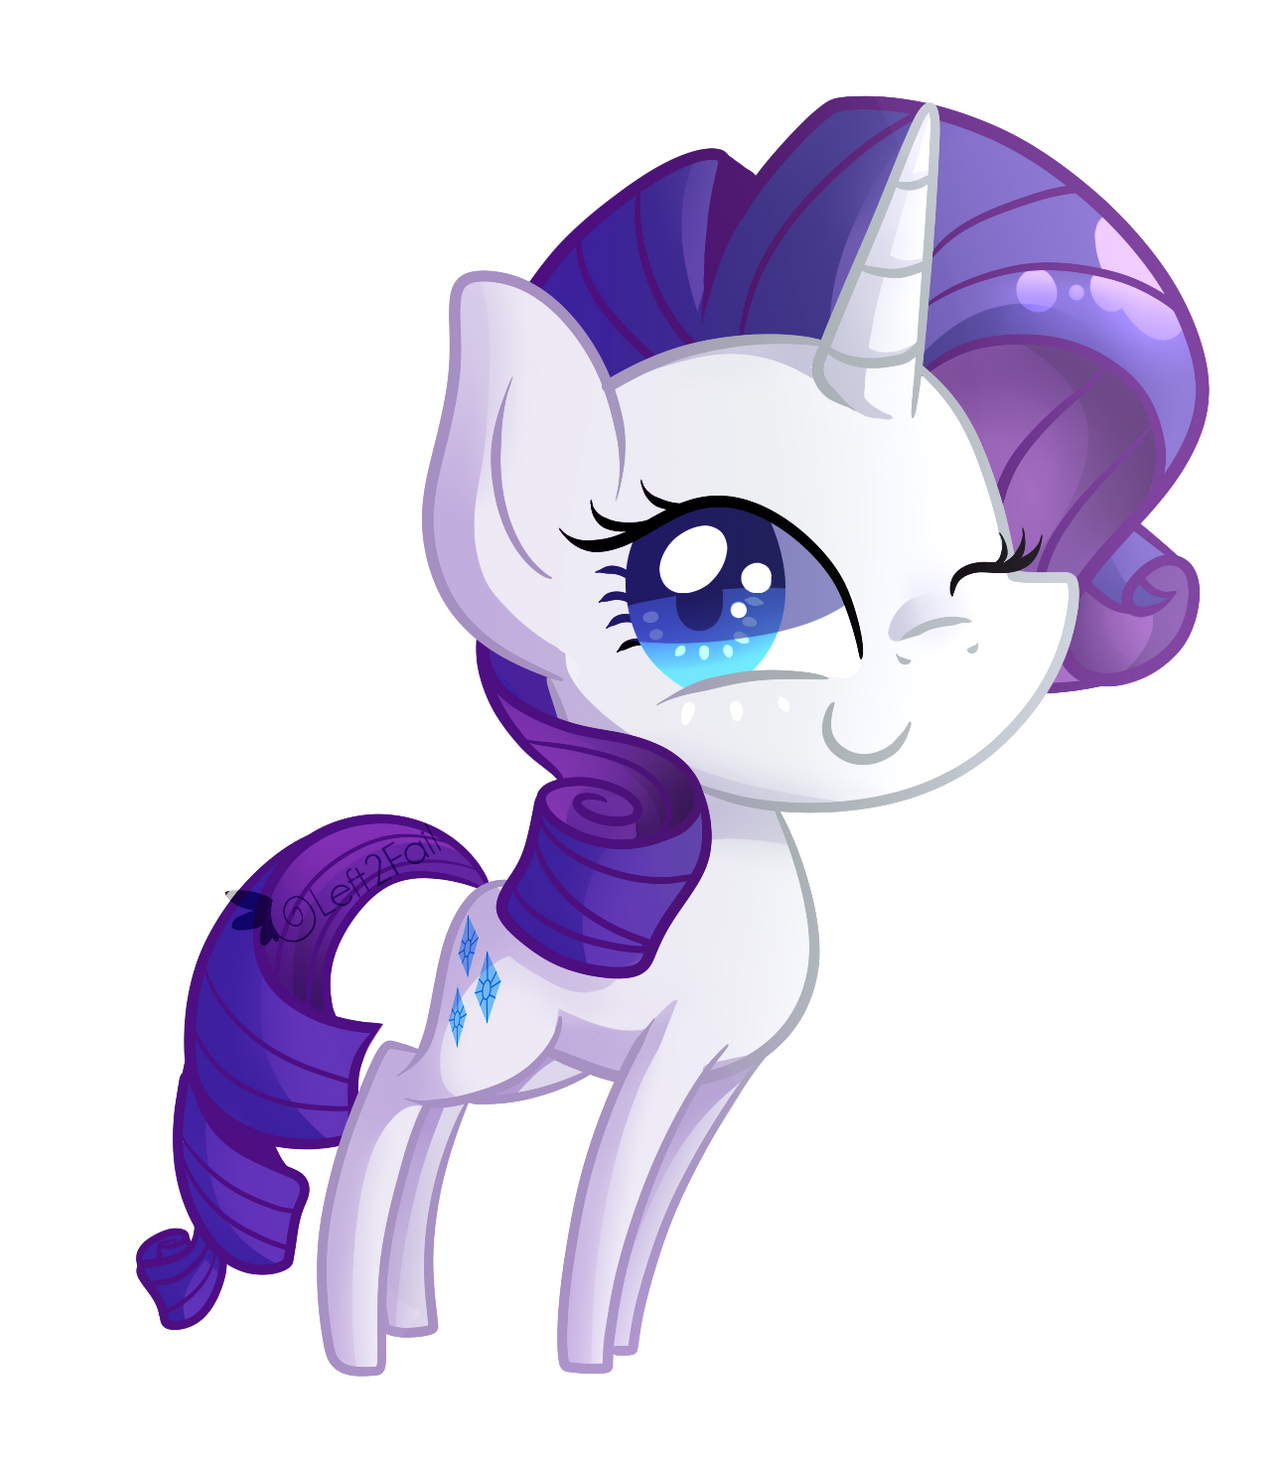 Chibi Rarity by Left2Fail on DeviantArt